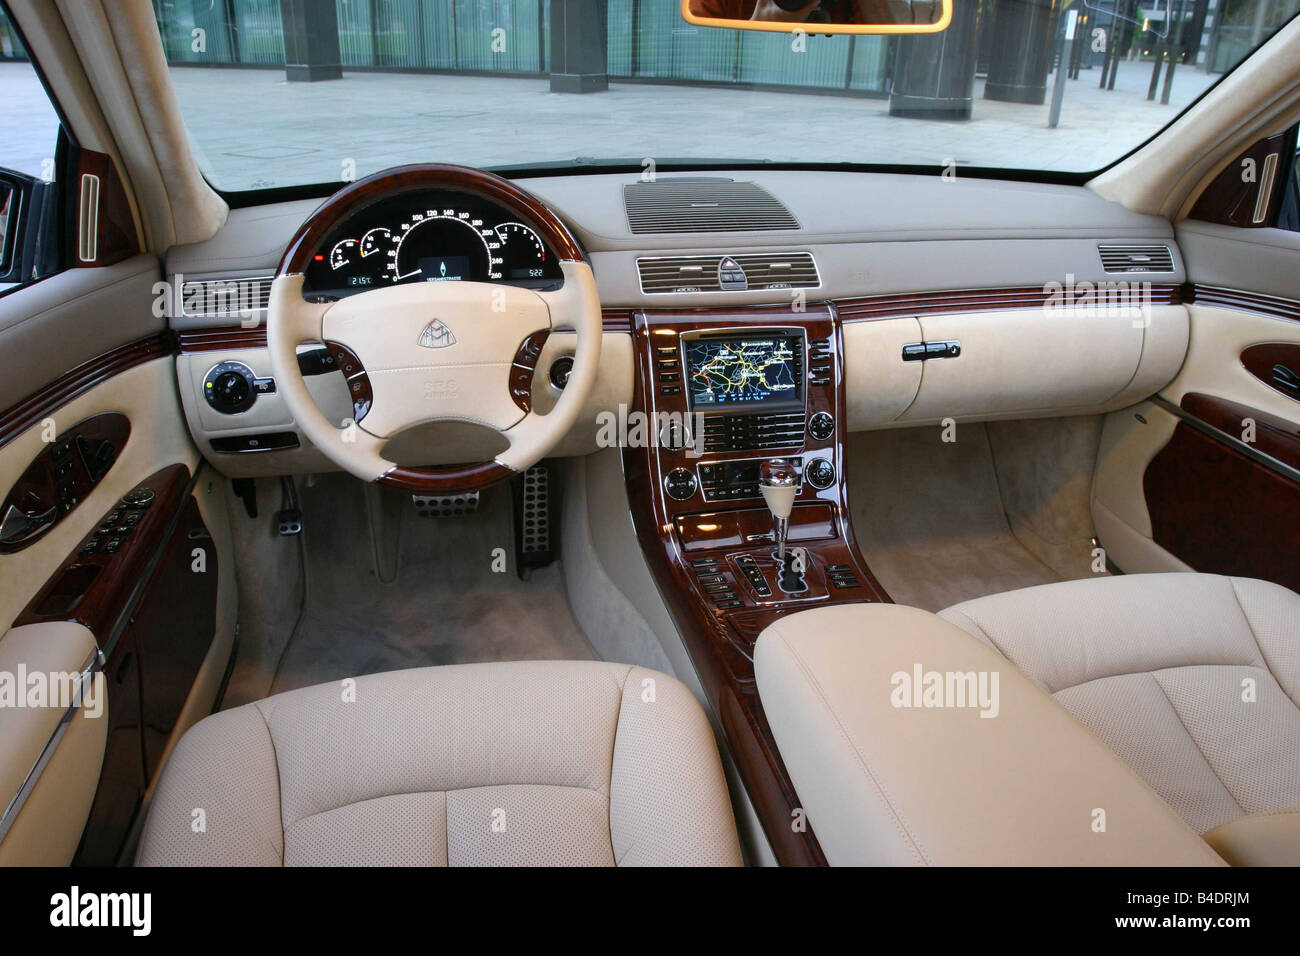 car mercedes maybach 62 luxury approxs black model year 2003 550 ps 418000 interior view interior view cockpit